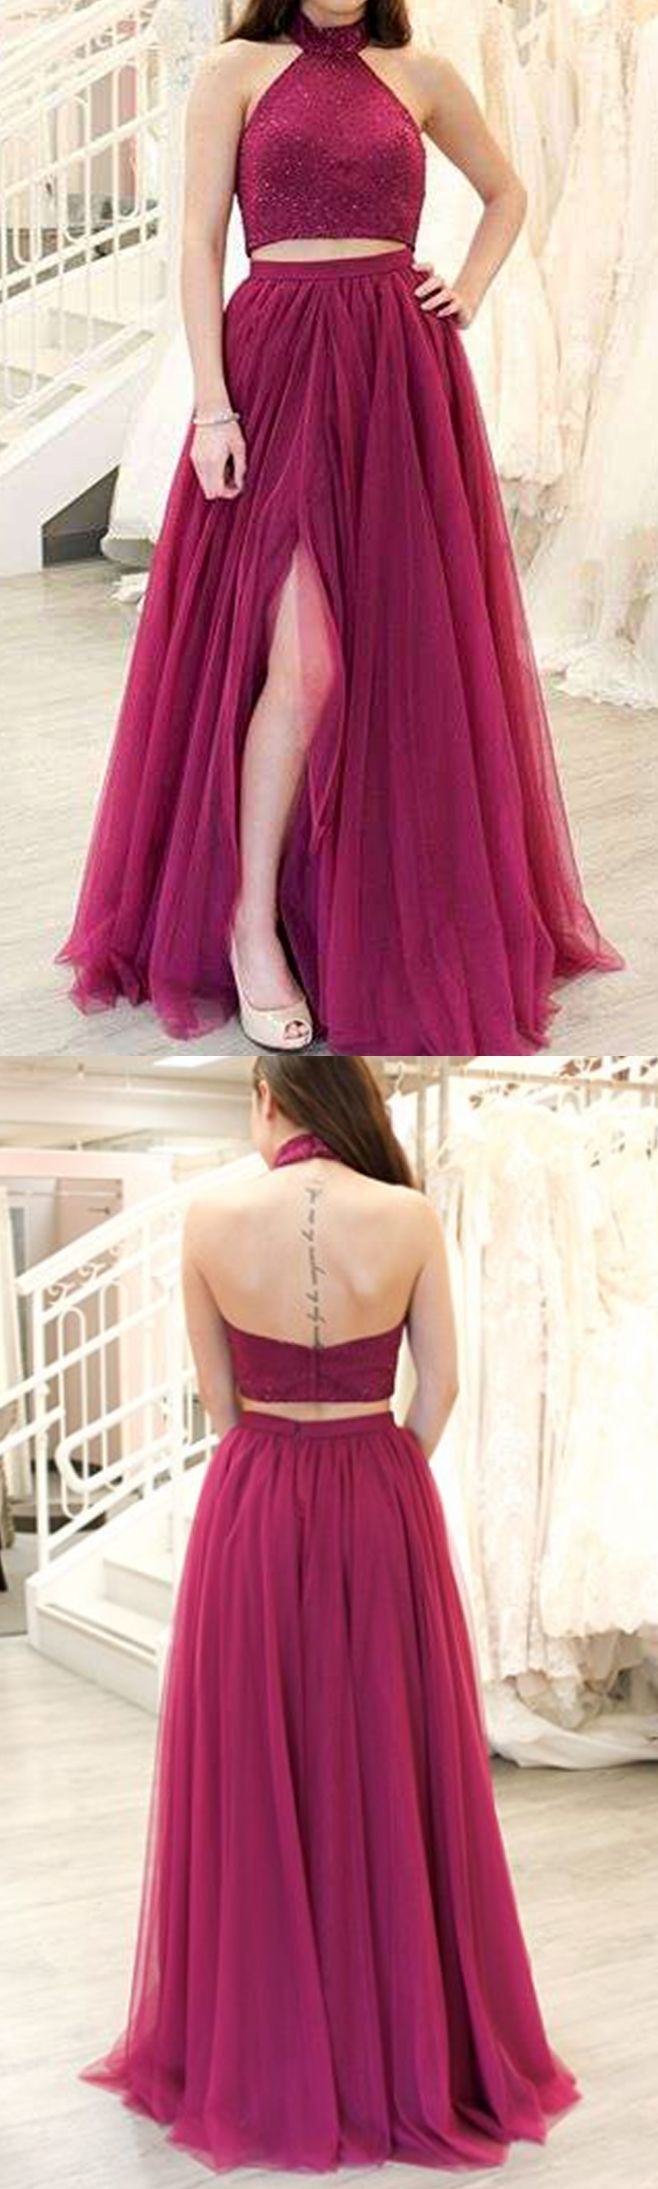 best tenues rouges images on pinterest bridesmaid dress formal